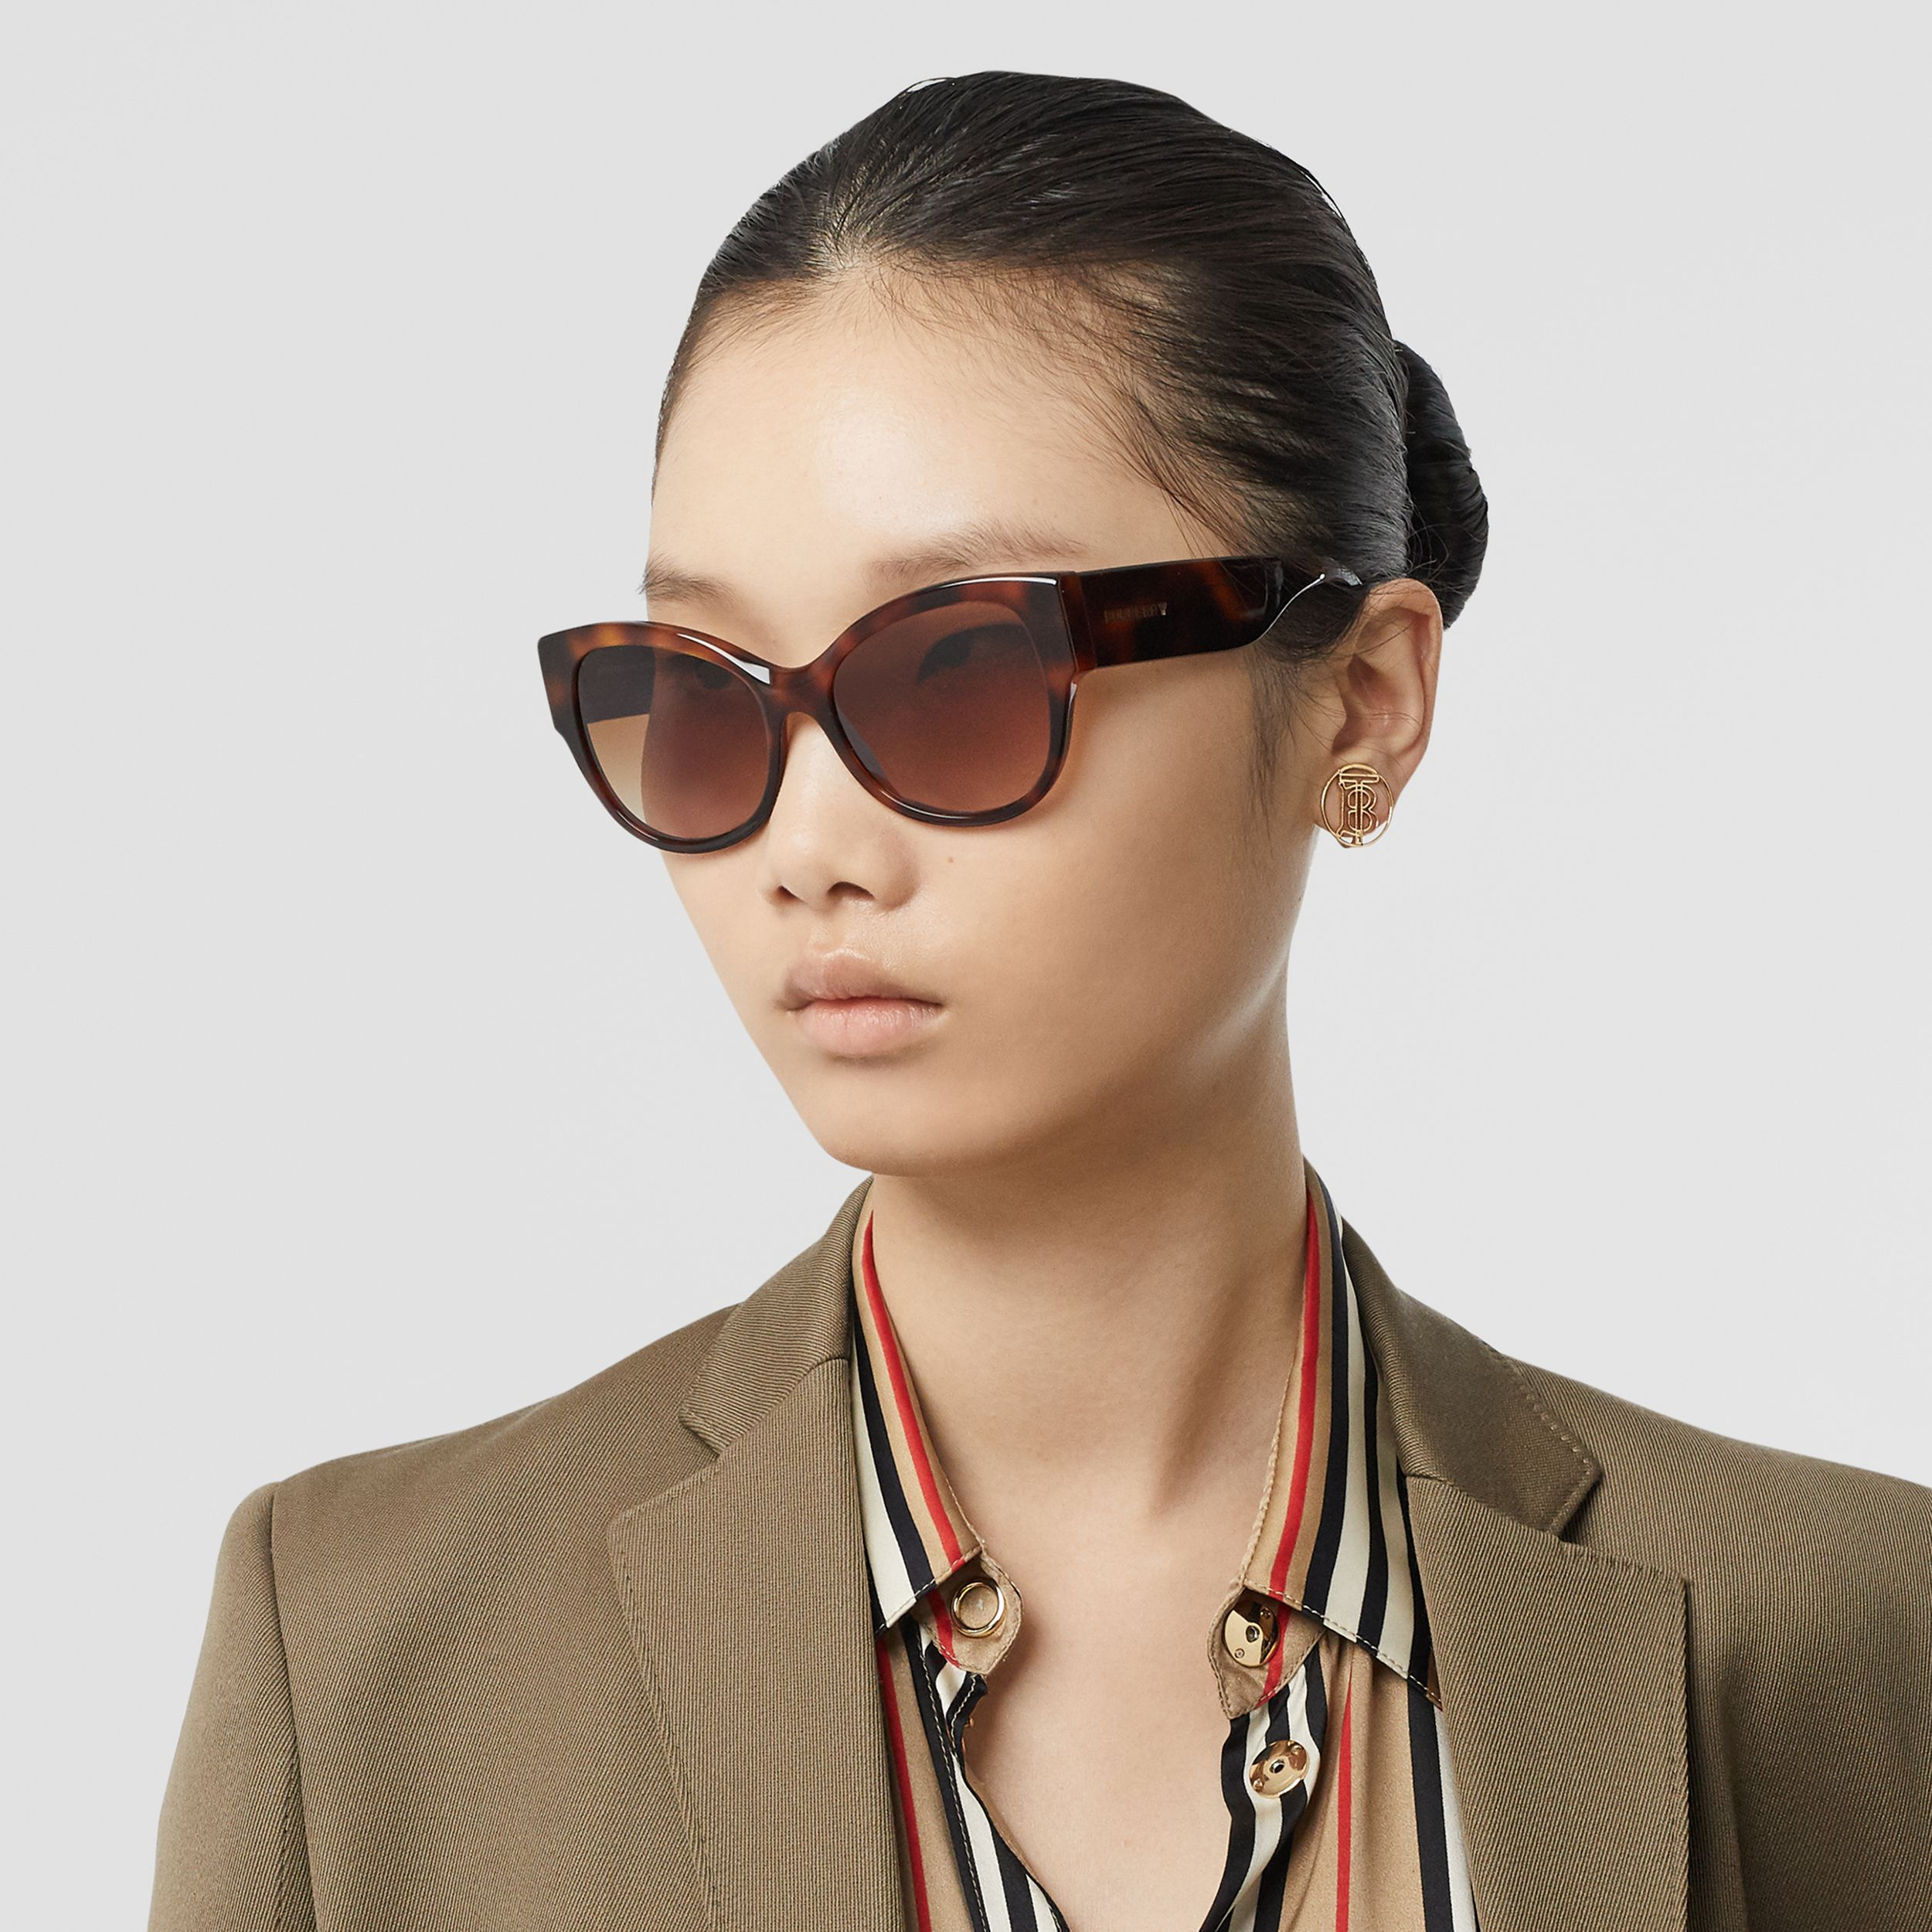 Butterfly Frame Sunglasses in Tortoise Amber - Women | Burberry Canada - 3